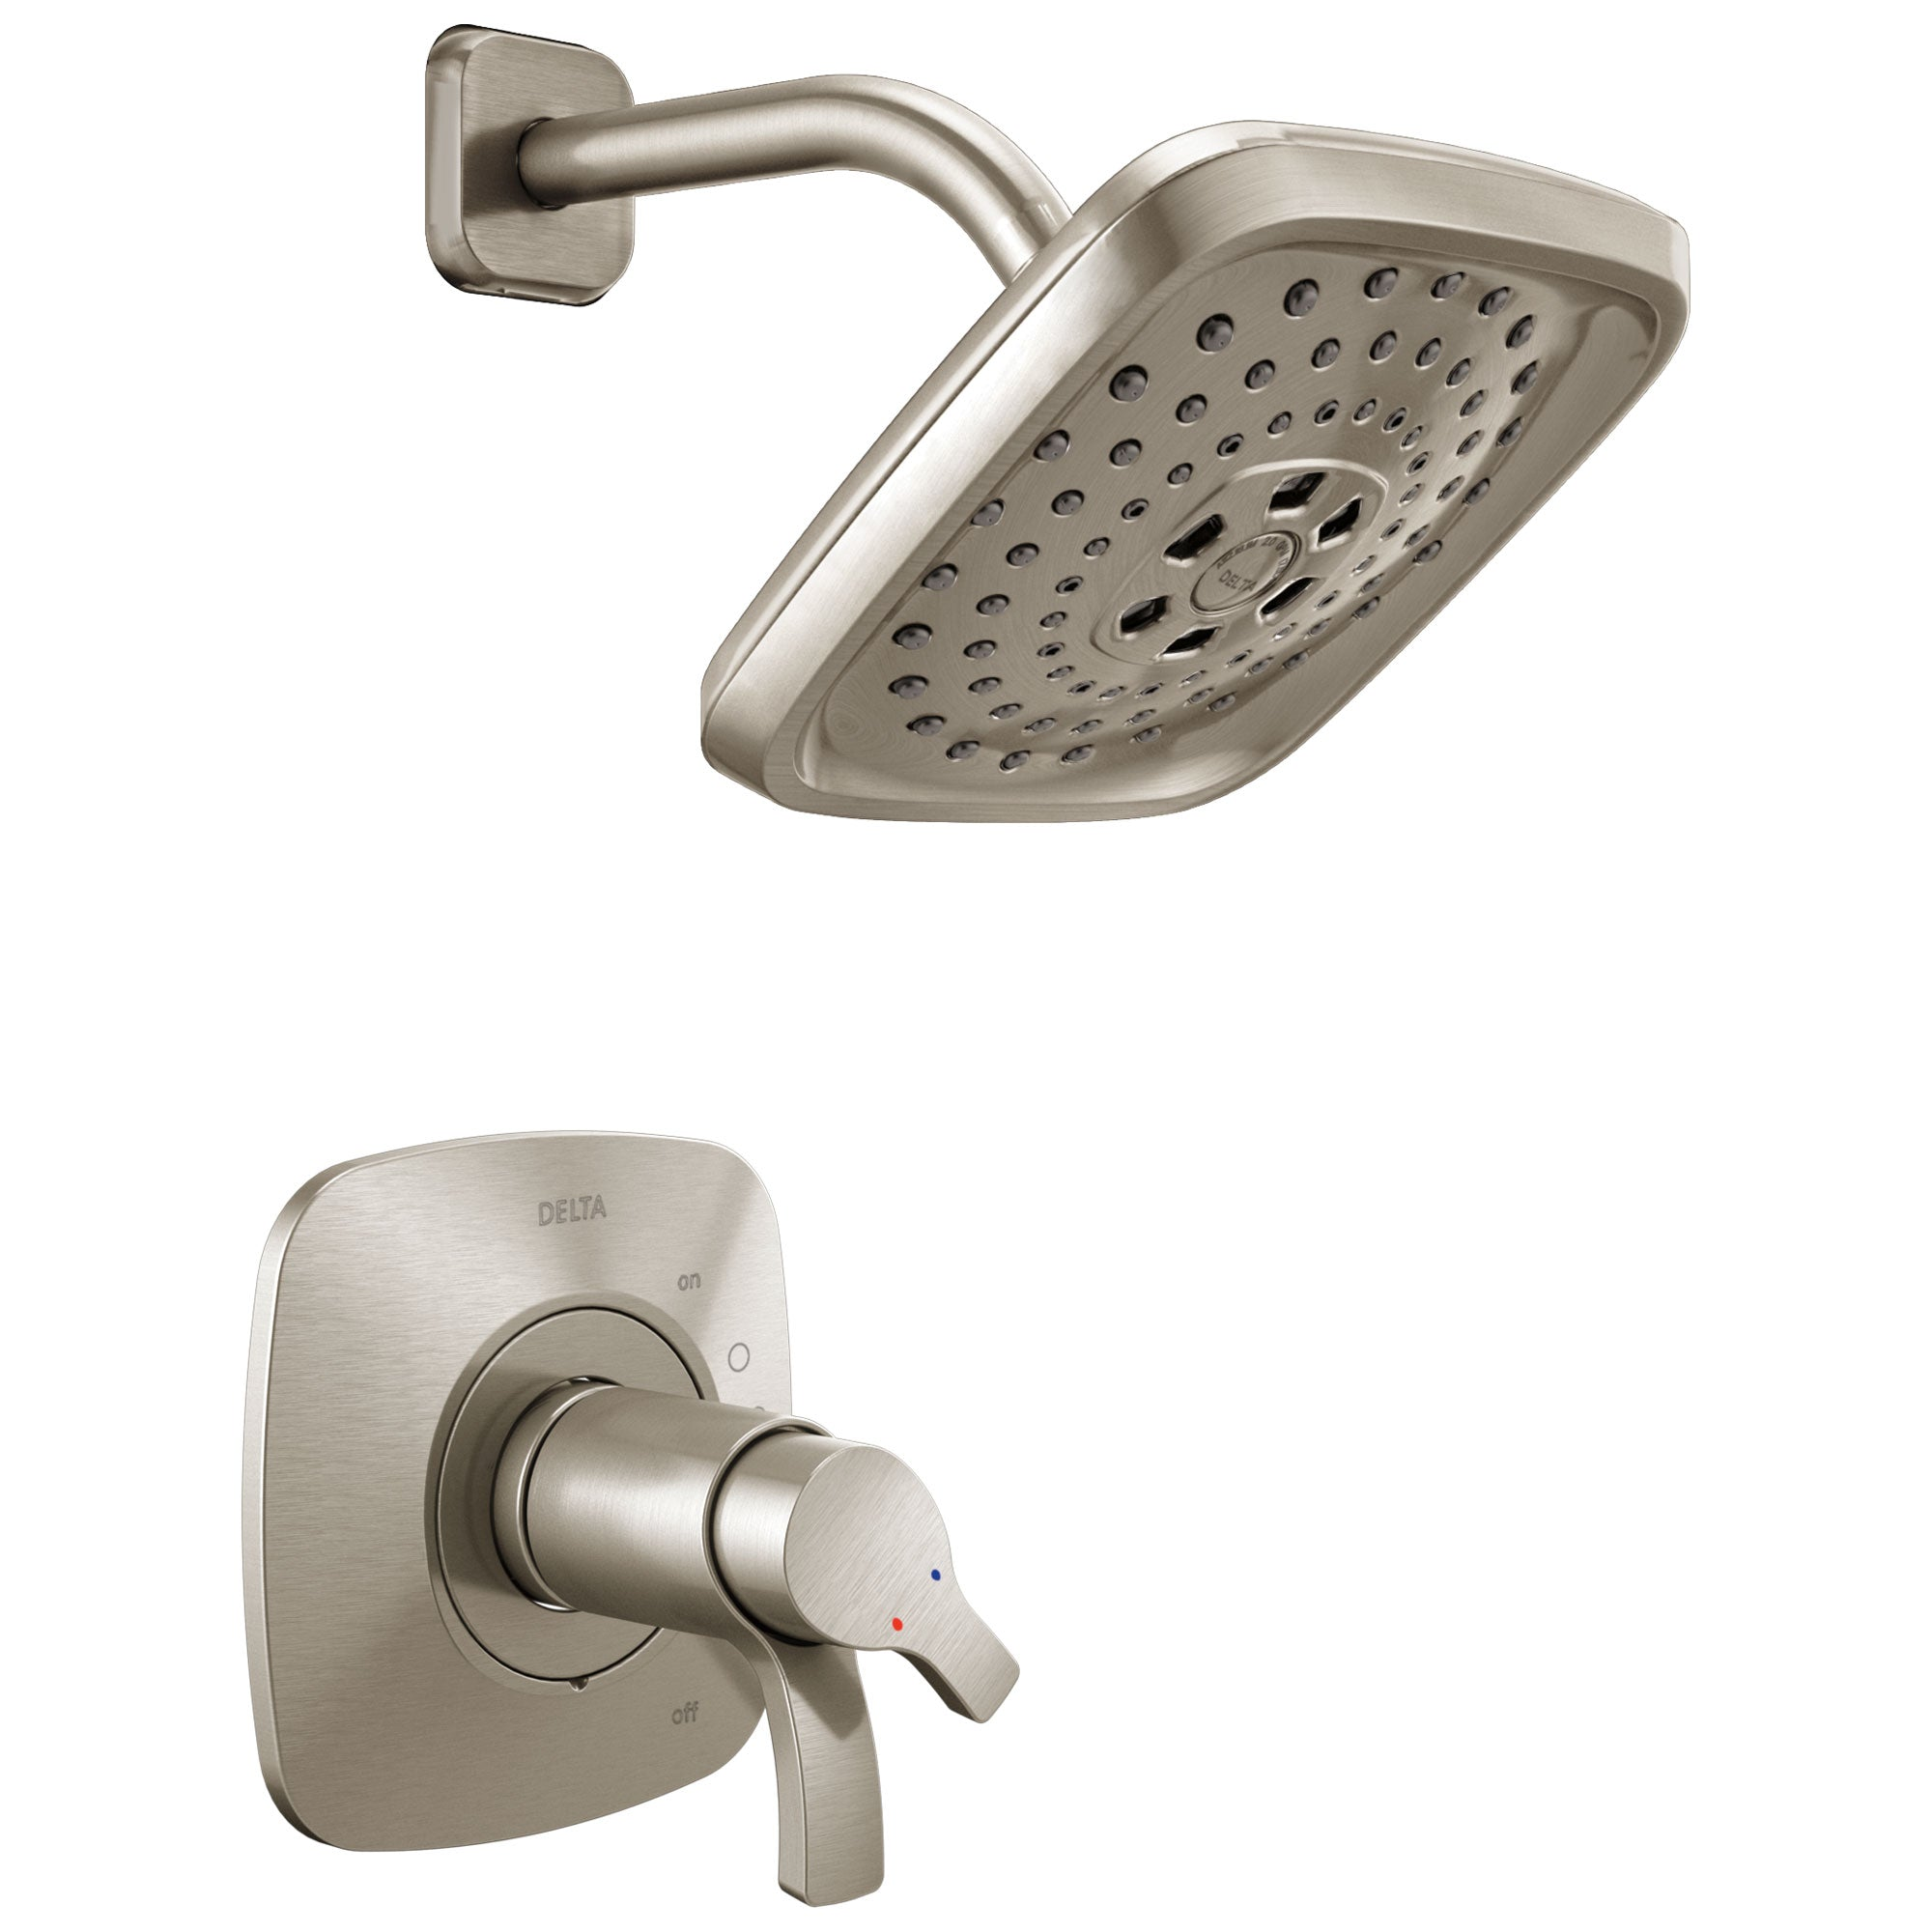 Delta Tesla H2Okinetic 1-Handle Shower Faucet in Stainless Steel Finish Includes Rough-in Valve without Stops D2590V